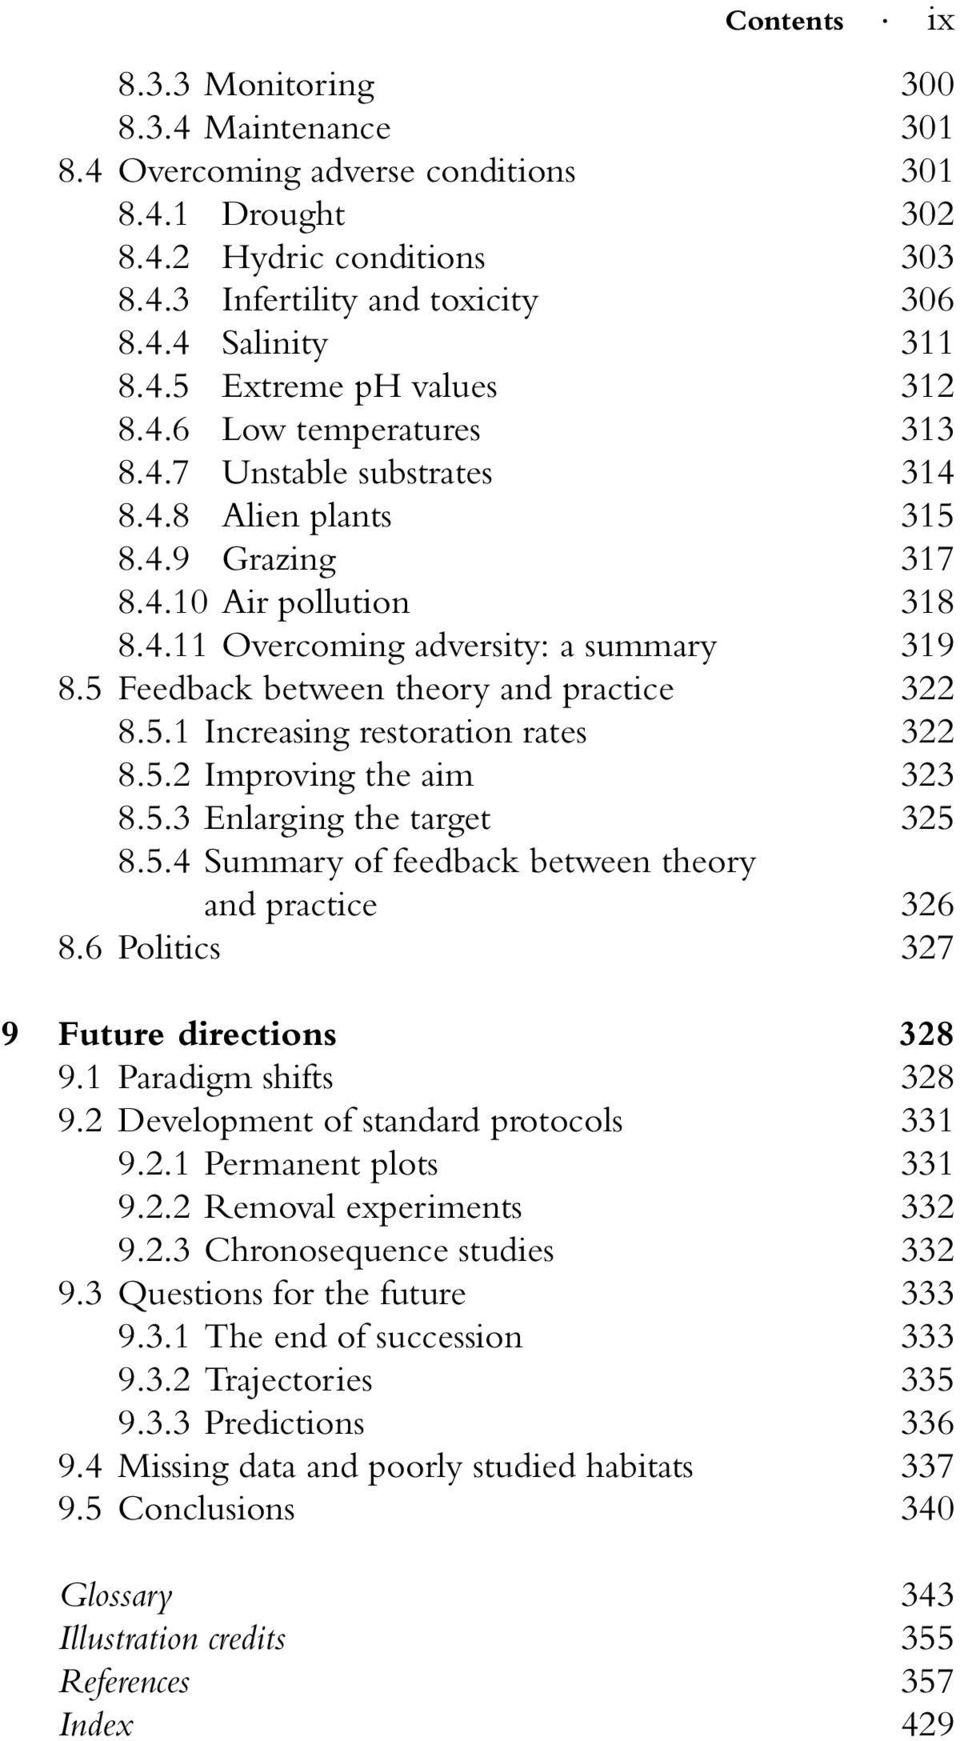 5 Feedback between theory and practice 322 8.5.1 Increasing restoration rates 322 8.5.2 Improving the aim 323 8.5.3 Enlarging the target 325 8.5.4 Summary of feedback between theory and practice 326 8.